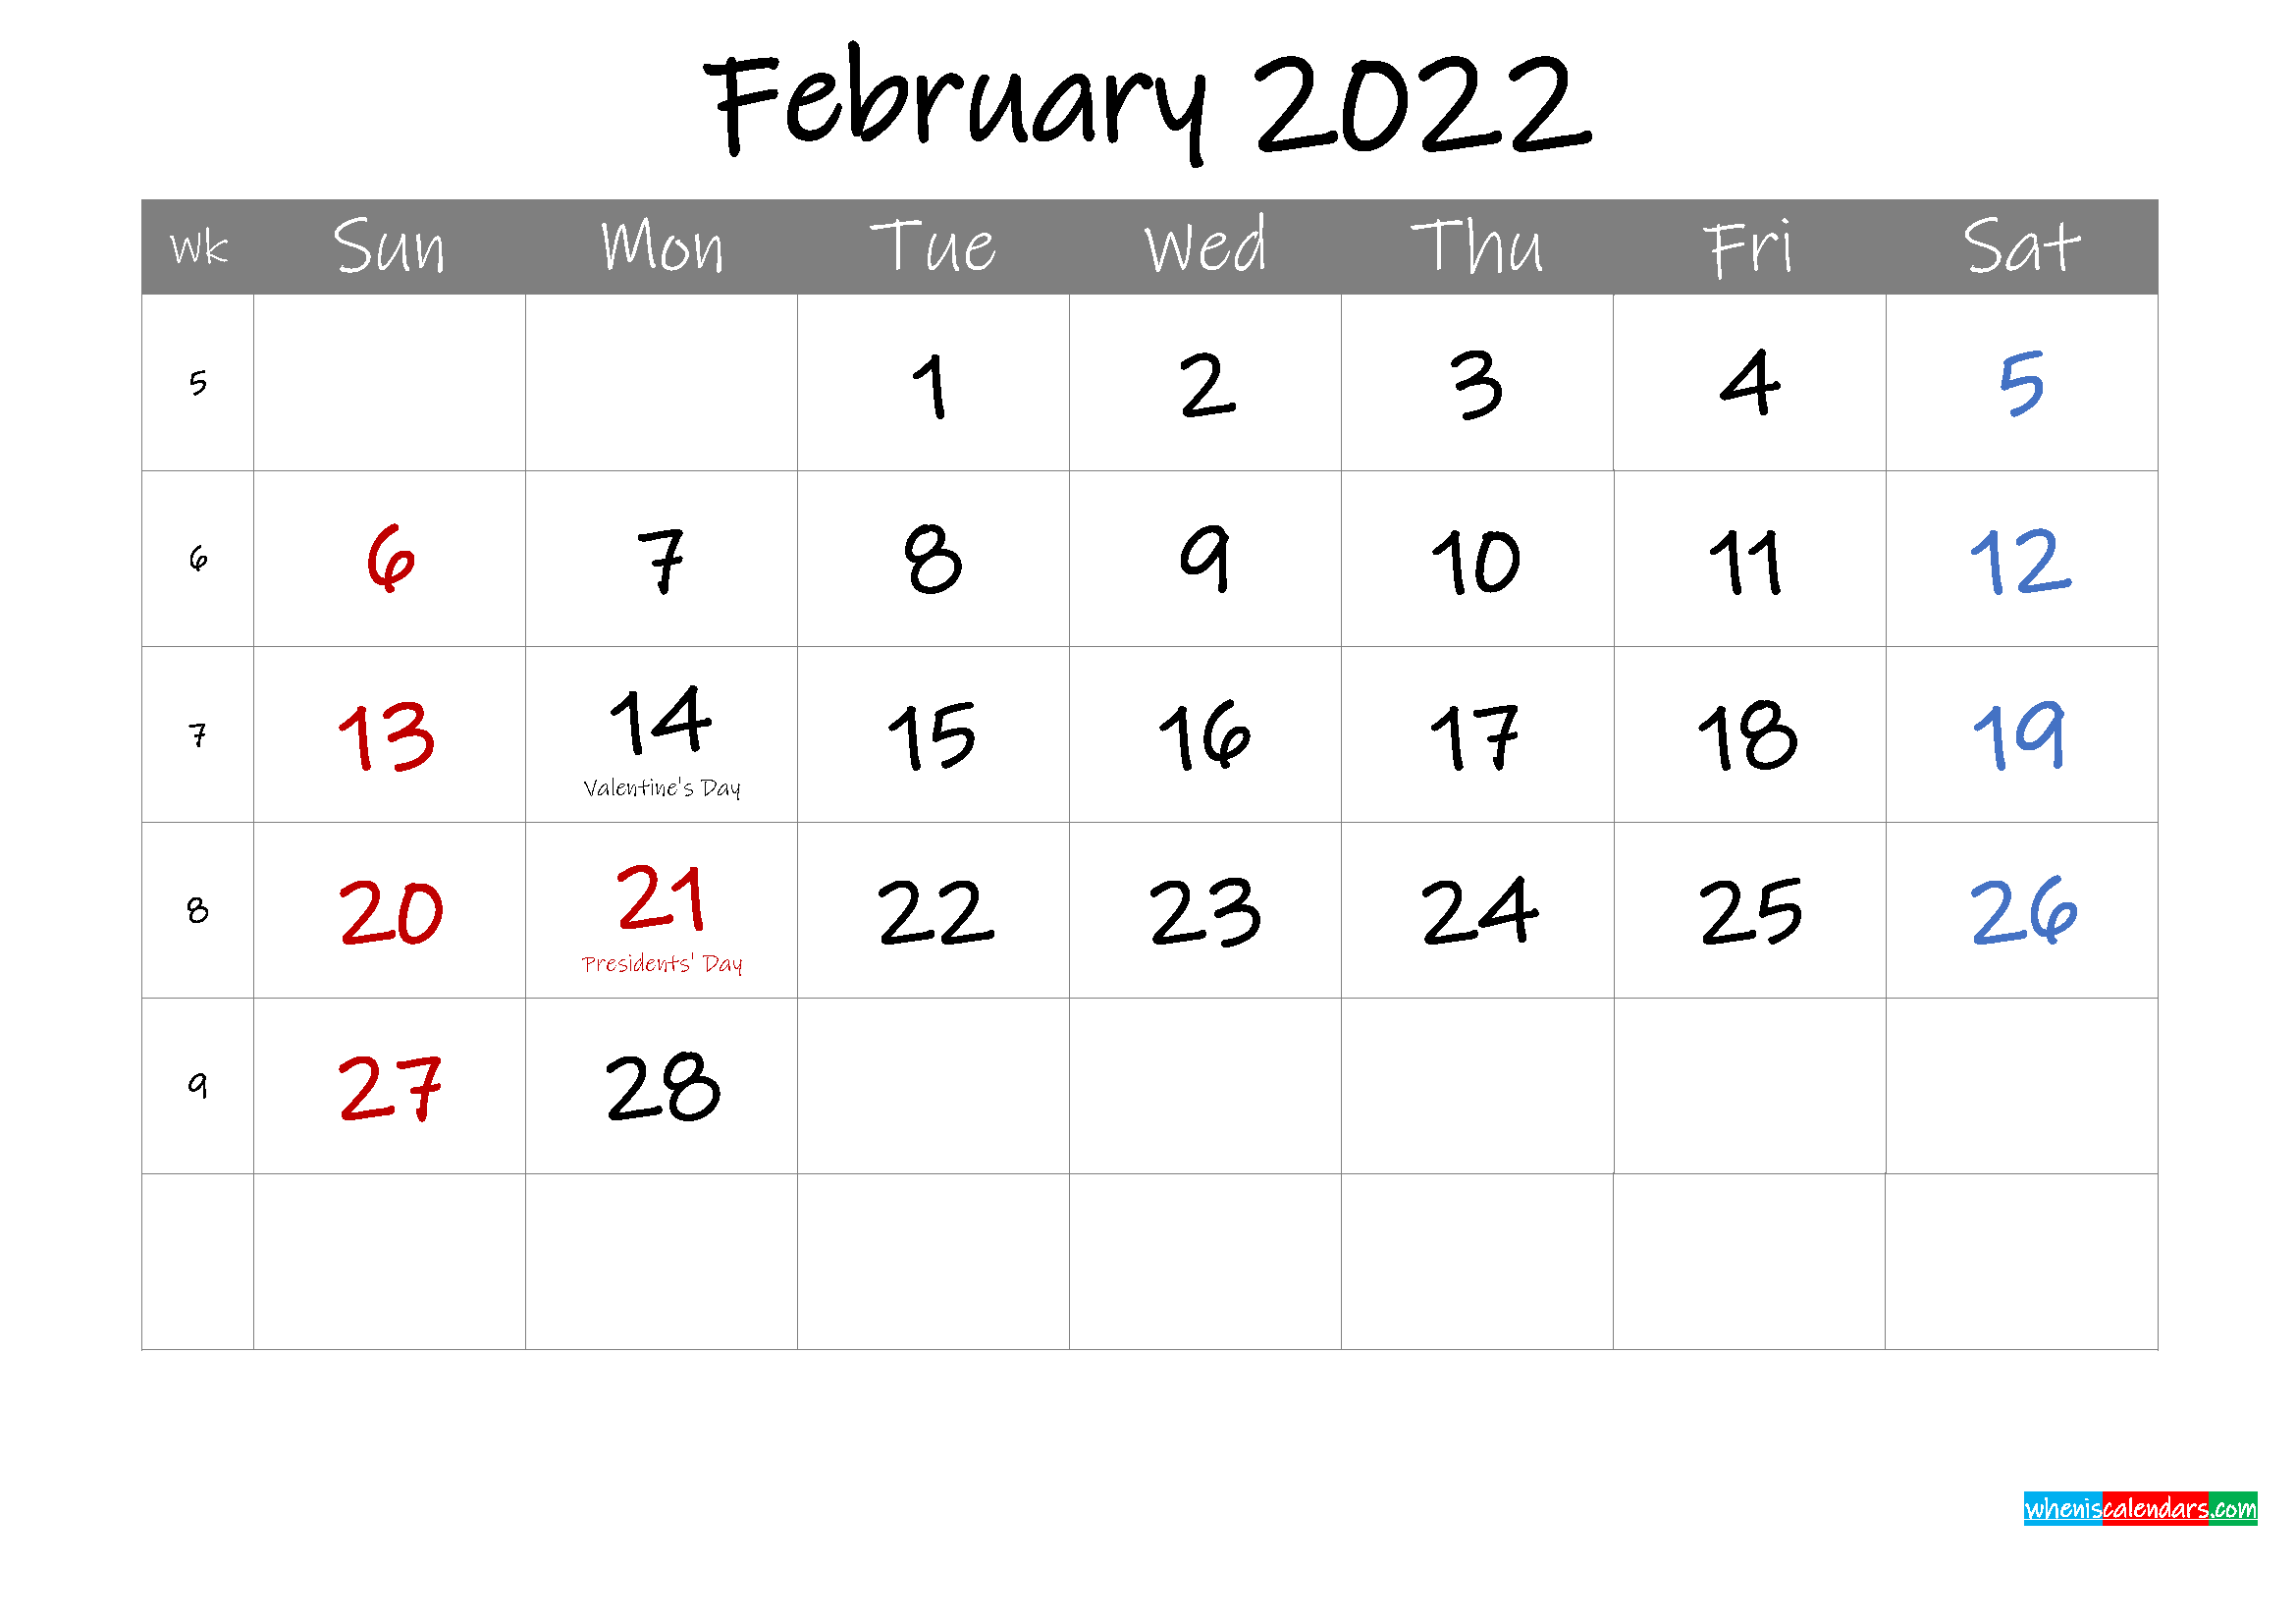 Editable February 2022 Calendar with Holidays - Template ...